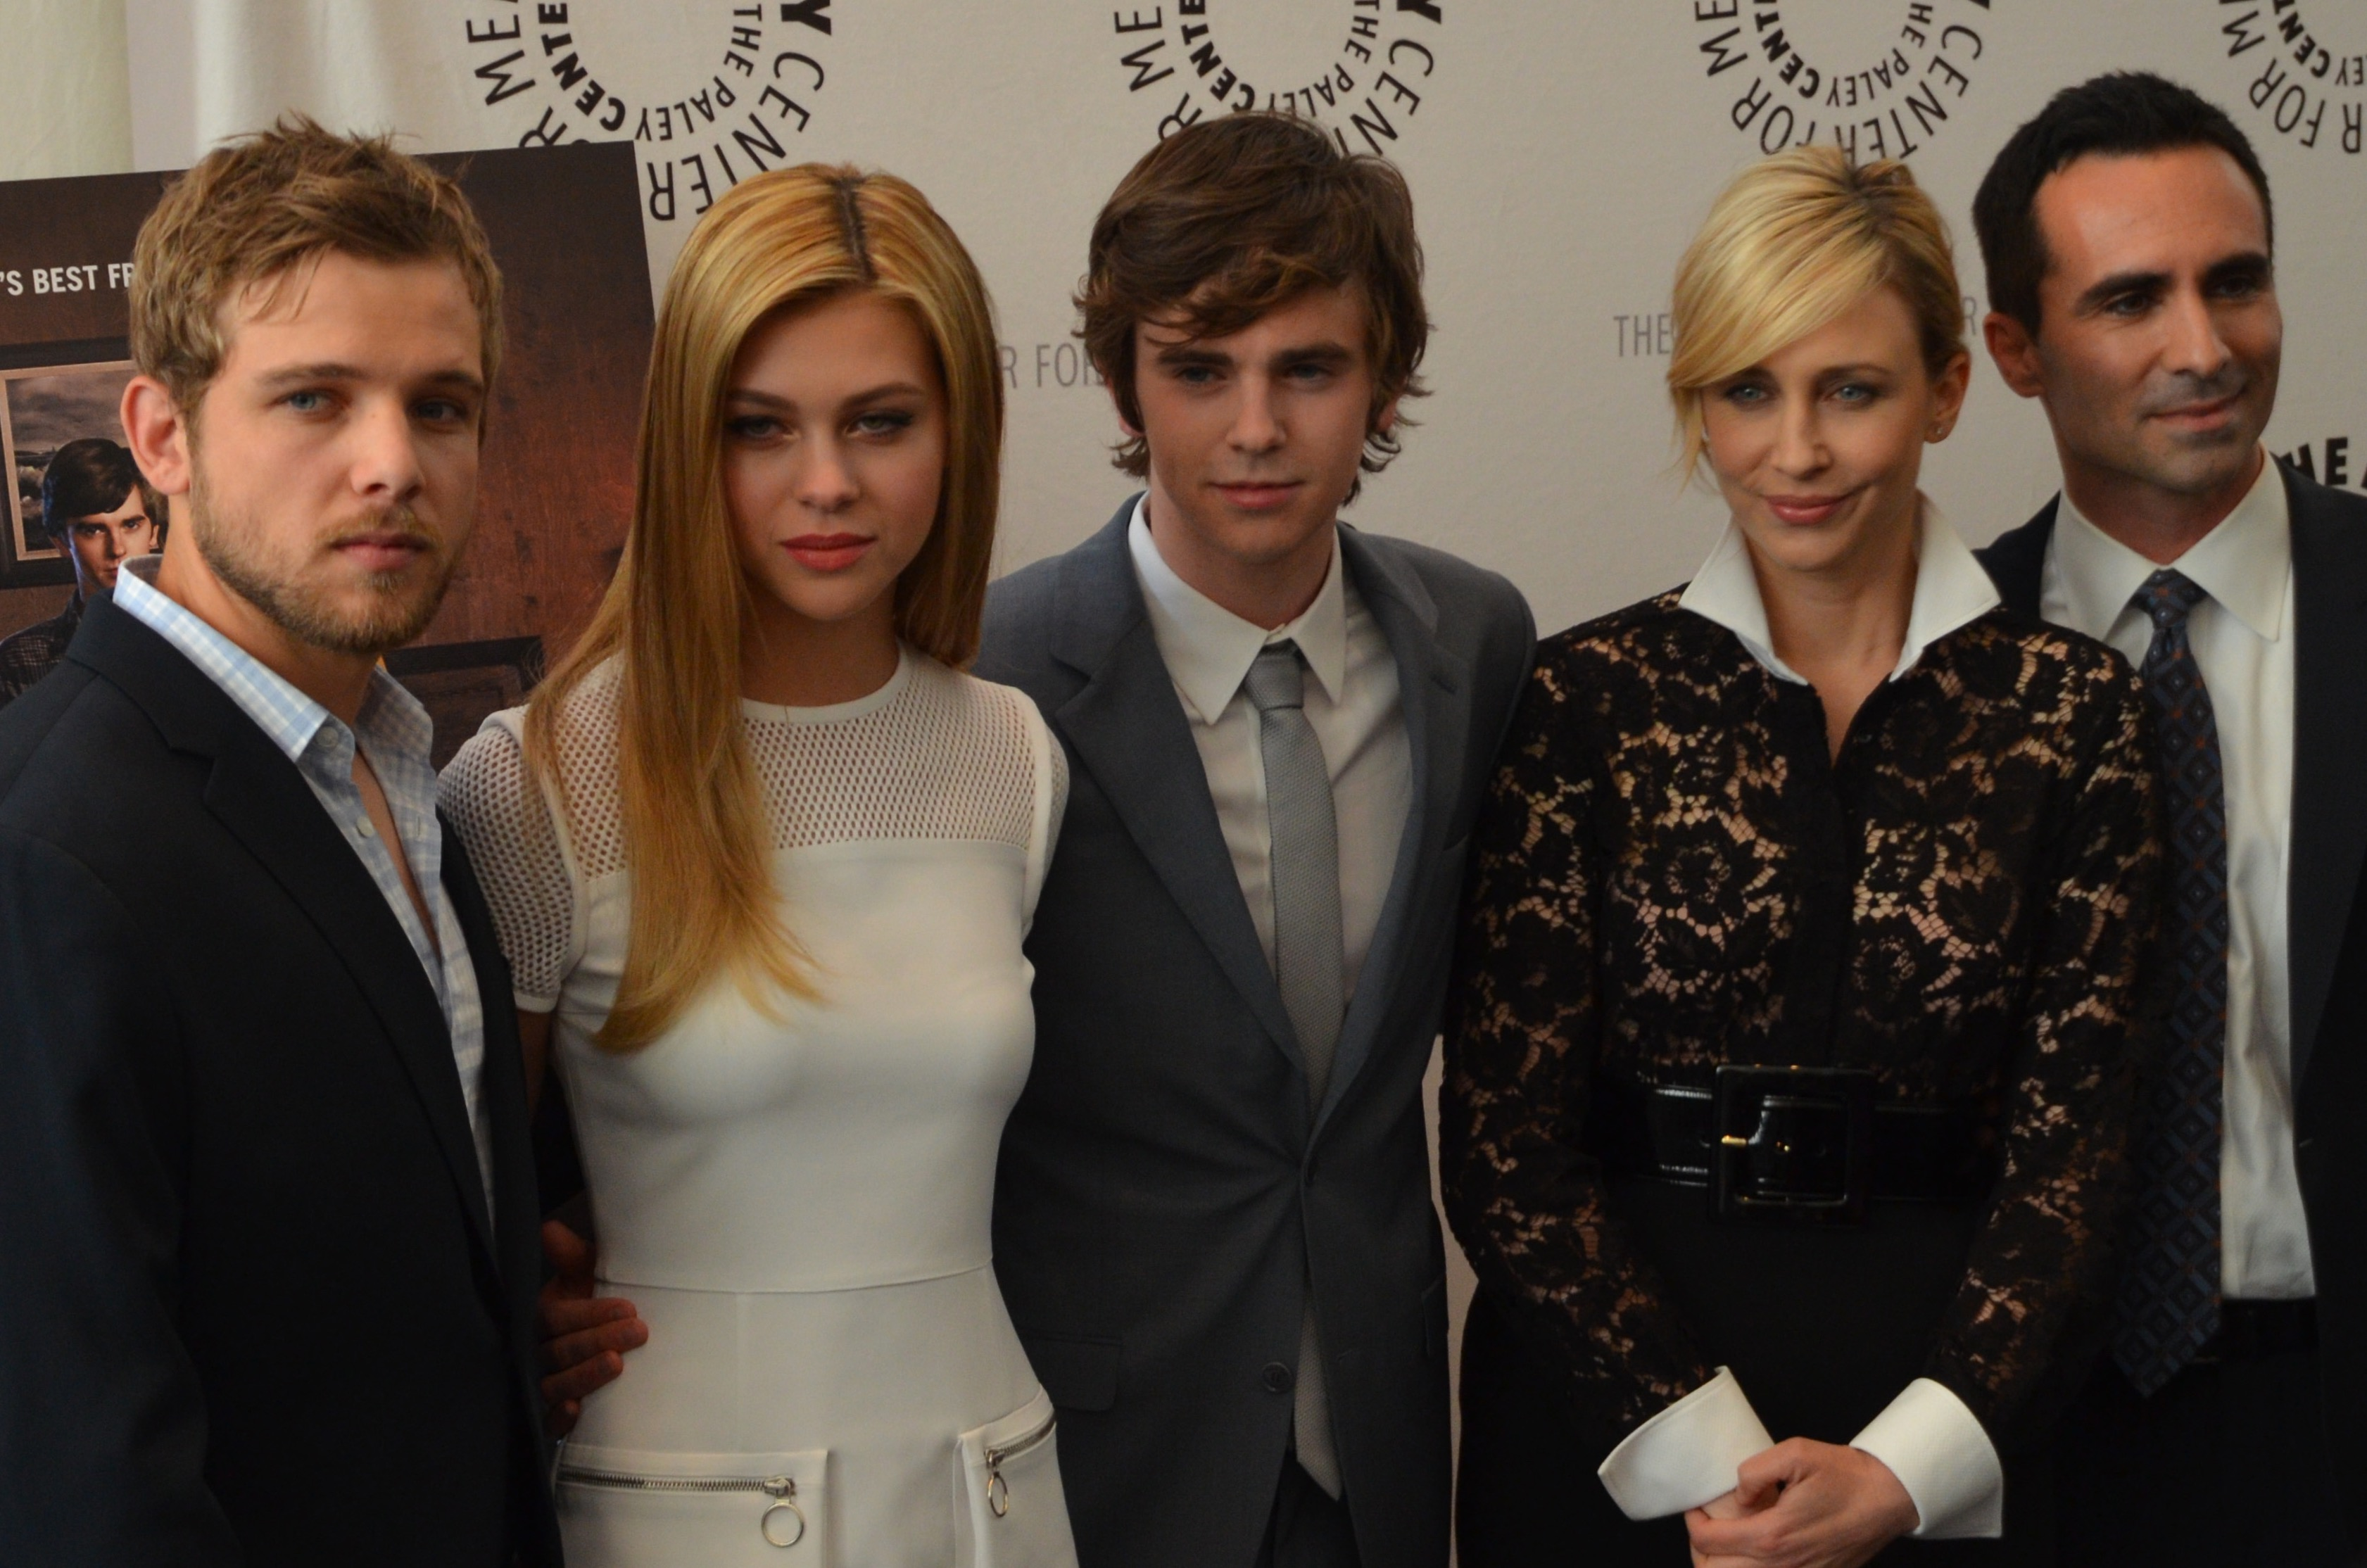 bates-motel-cast-2013